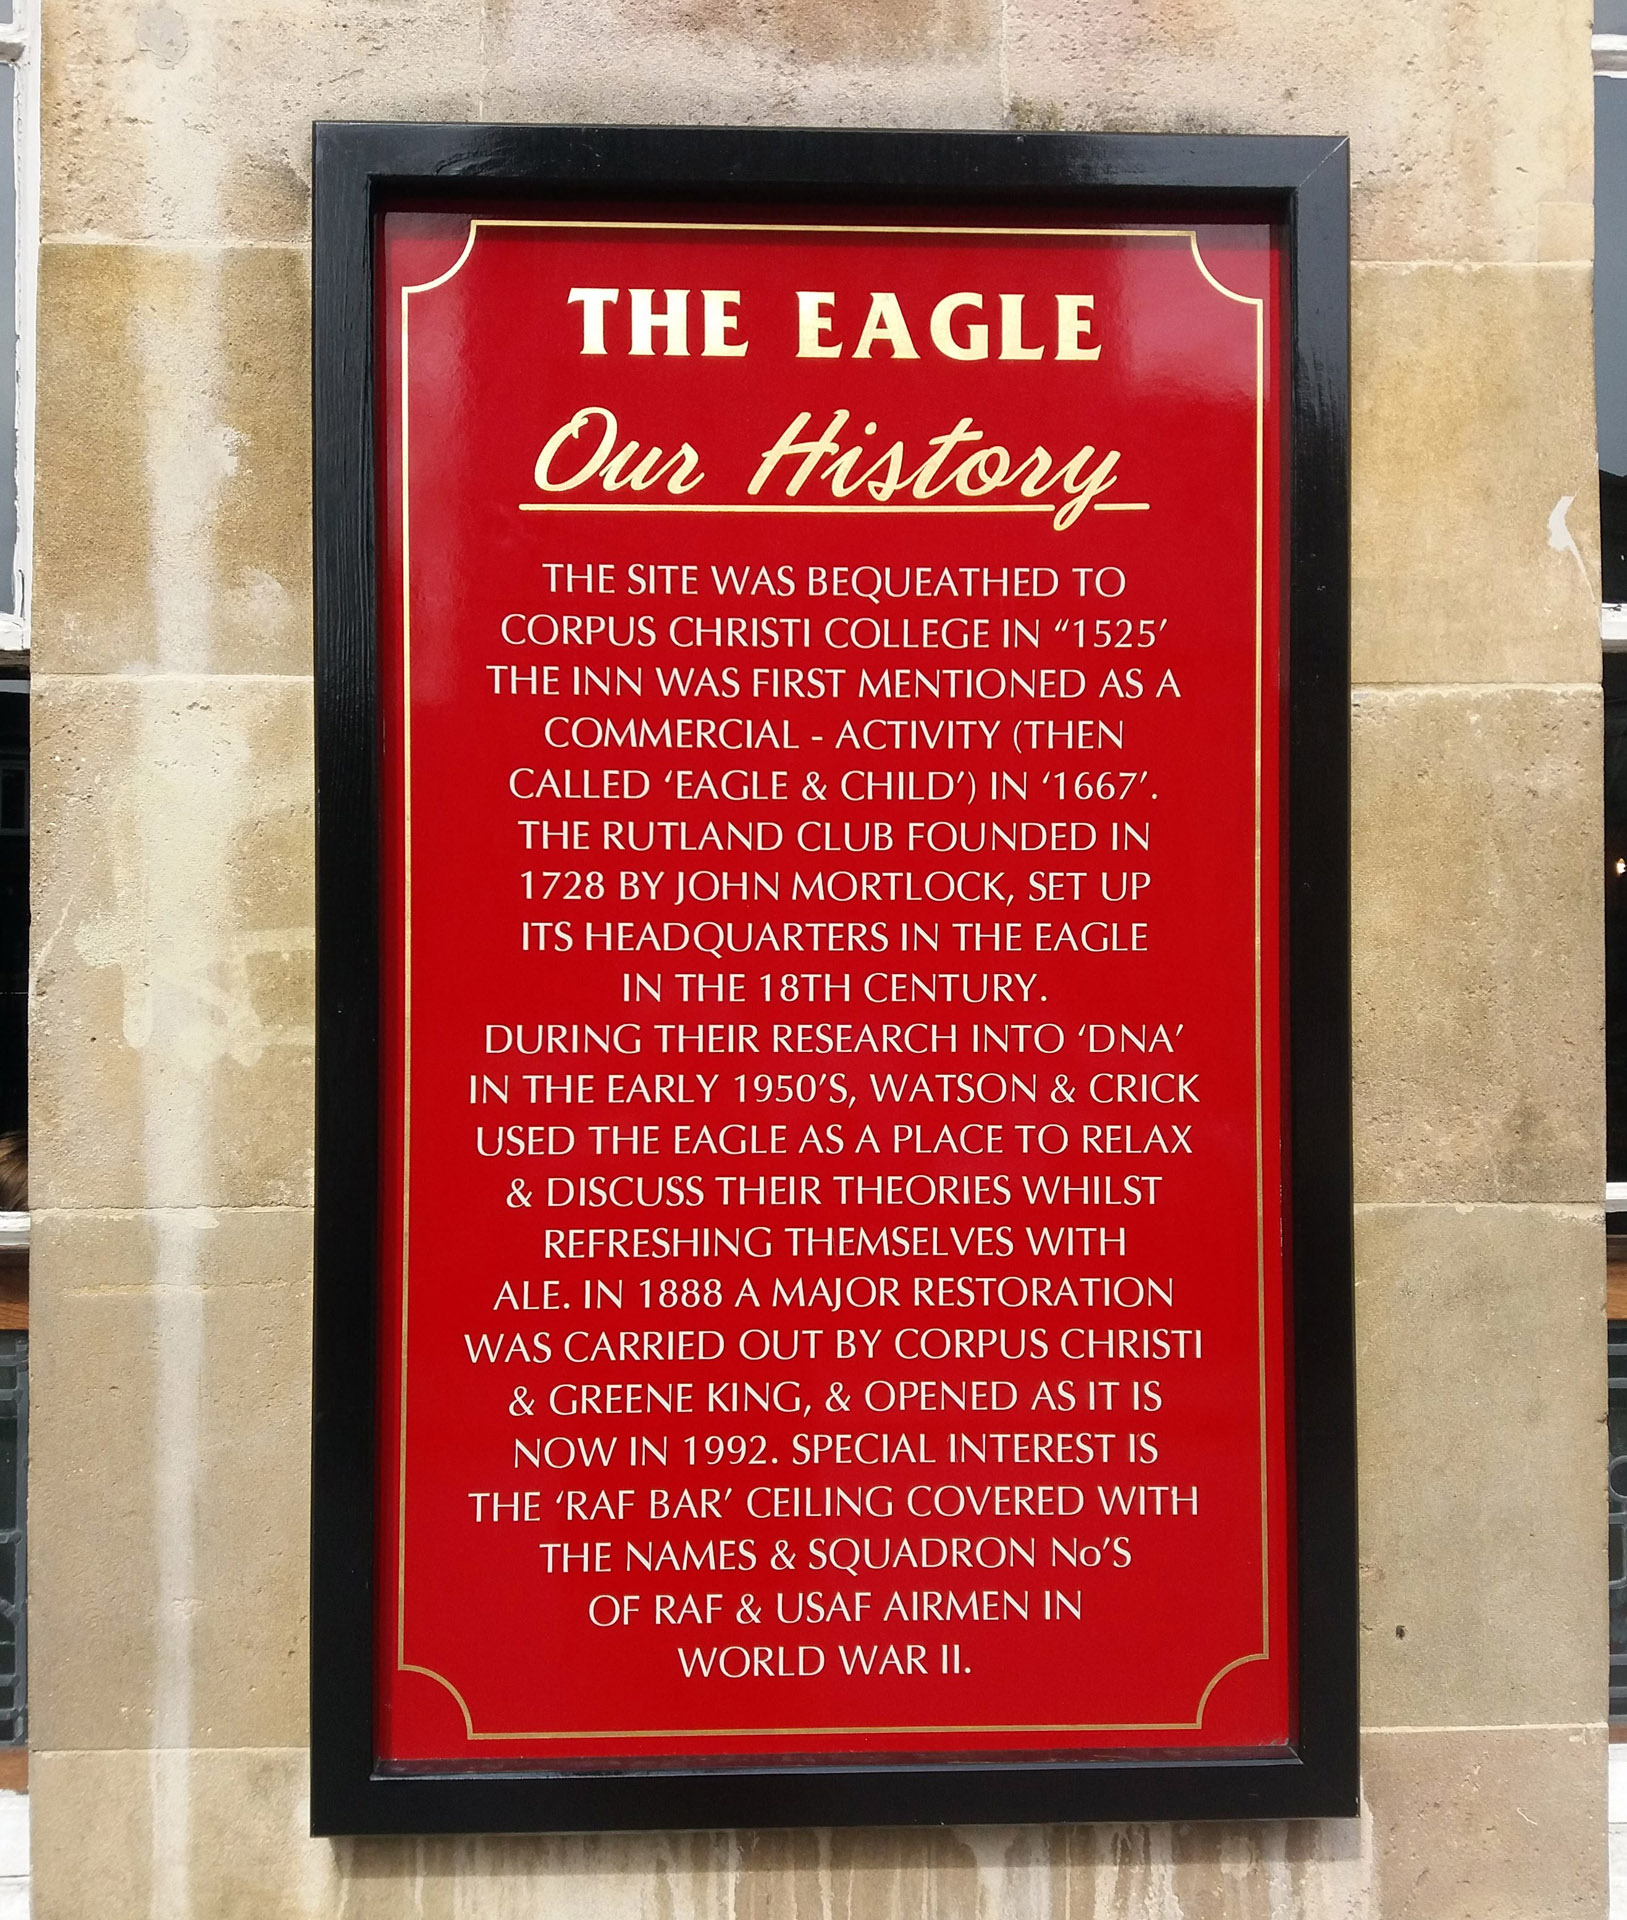 The Eagle pub hundreds years old recent history